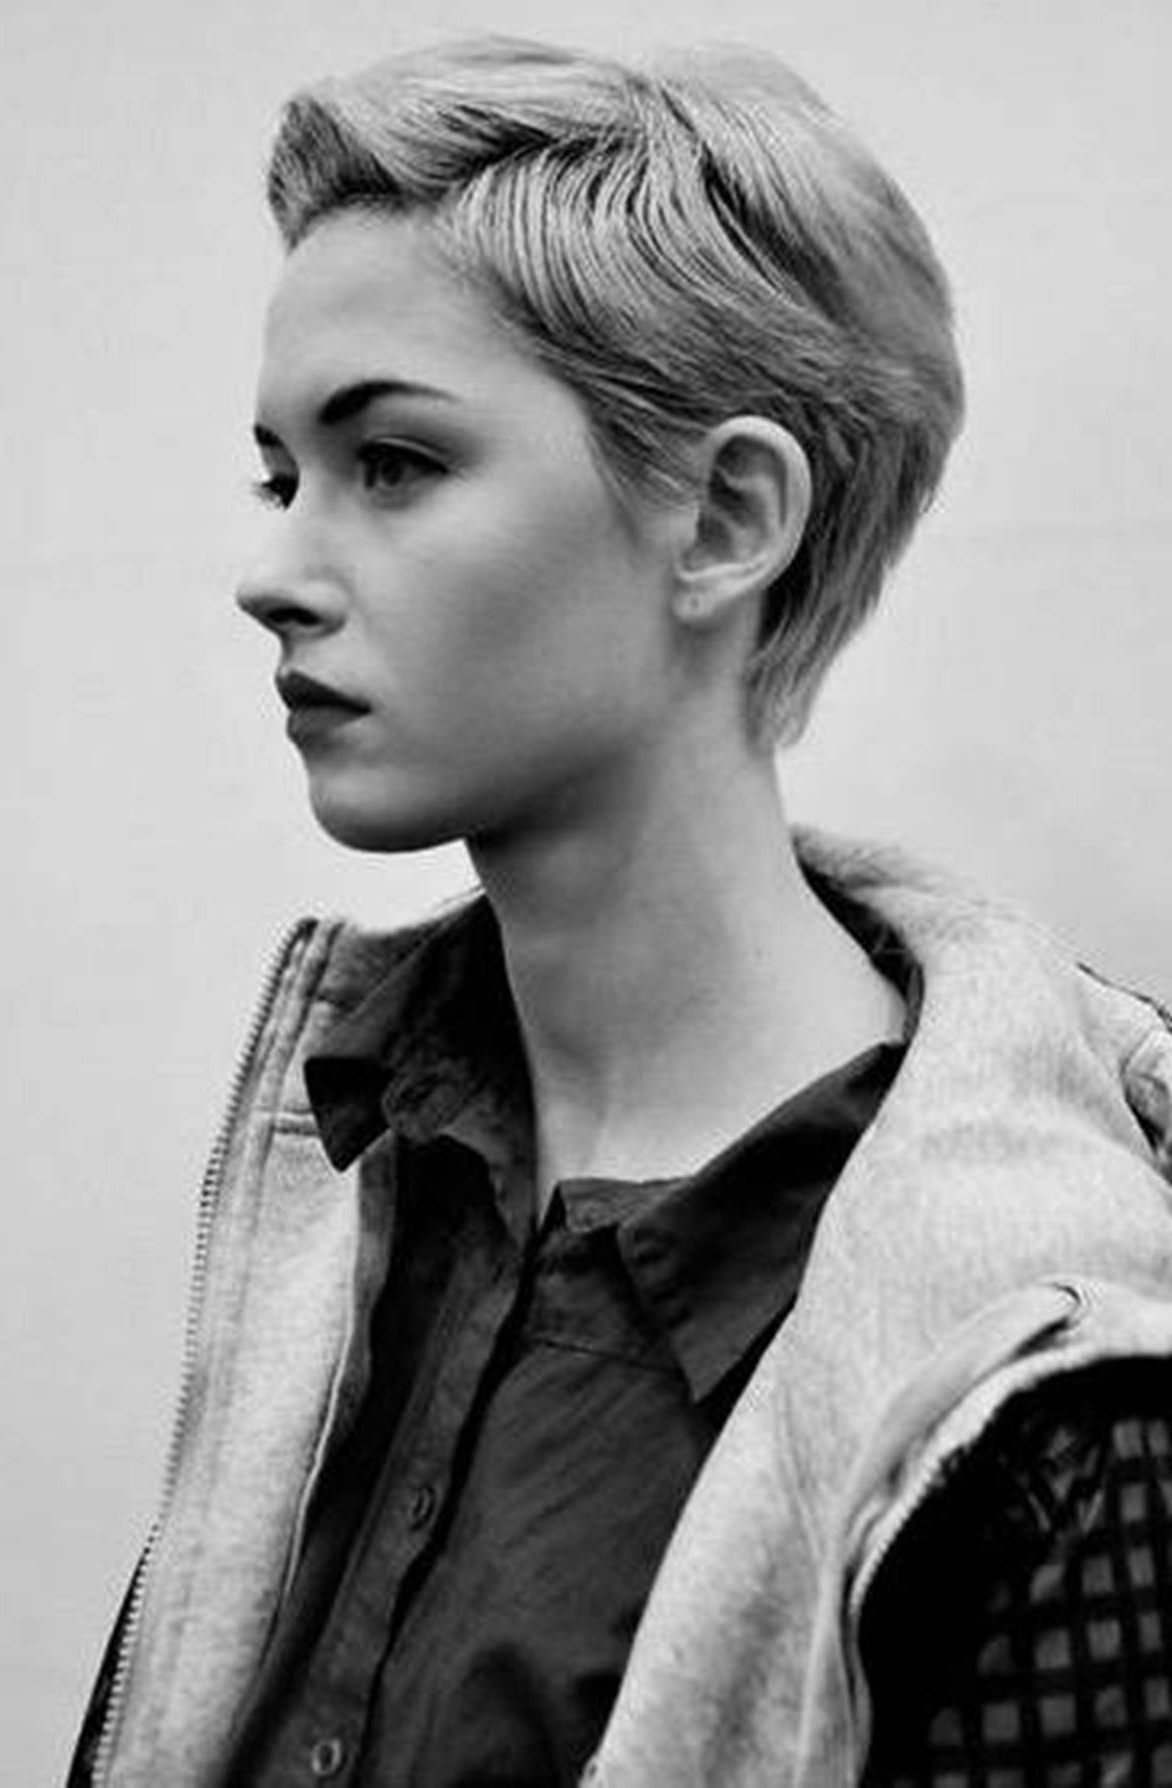 Mesmerizing Half Shaved Hairstyles Short Hair Also Shaved Haircuts Regarding Short Hairstyles One Side Shaved (View 22 of 25)